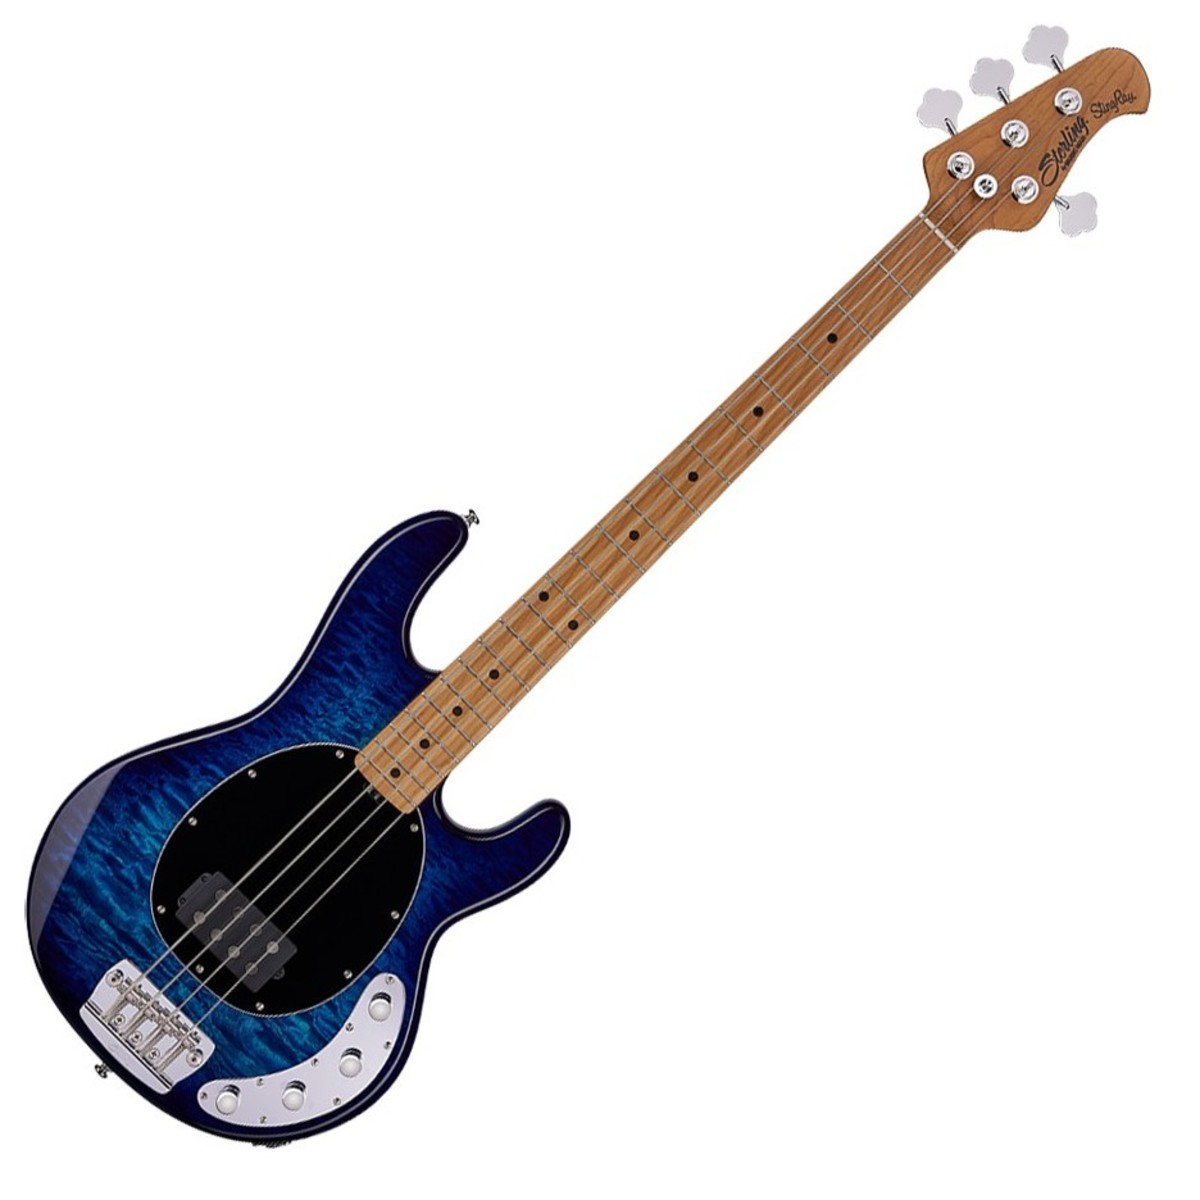 sterling by music man stingray bass neptune blue at gear4music. Black Bedroom Furniture Sets. Home Design Ideas